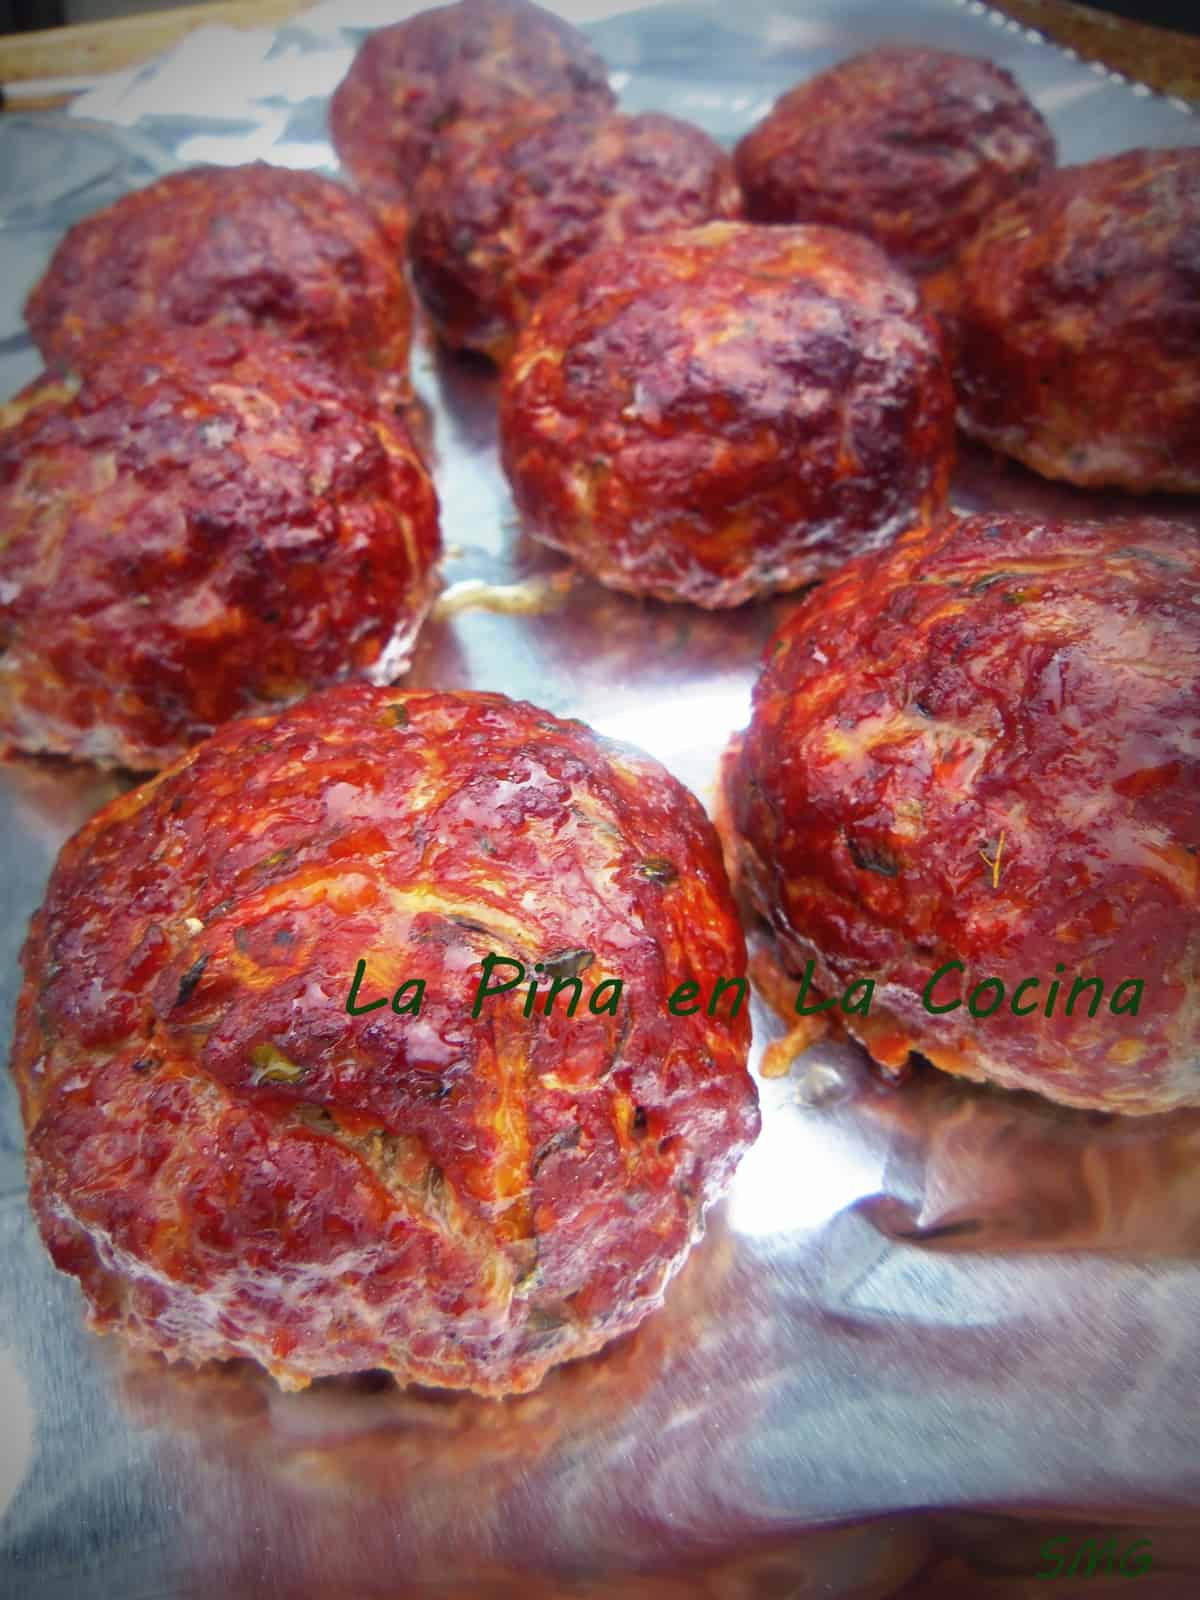 Grilled Beef and Zucchini Meatballs Stuffed with Hot Peppers